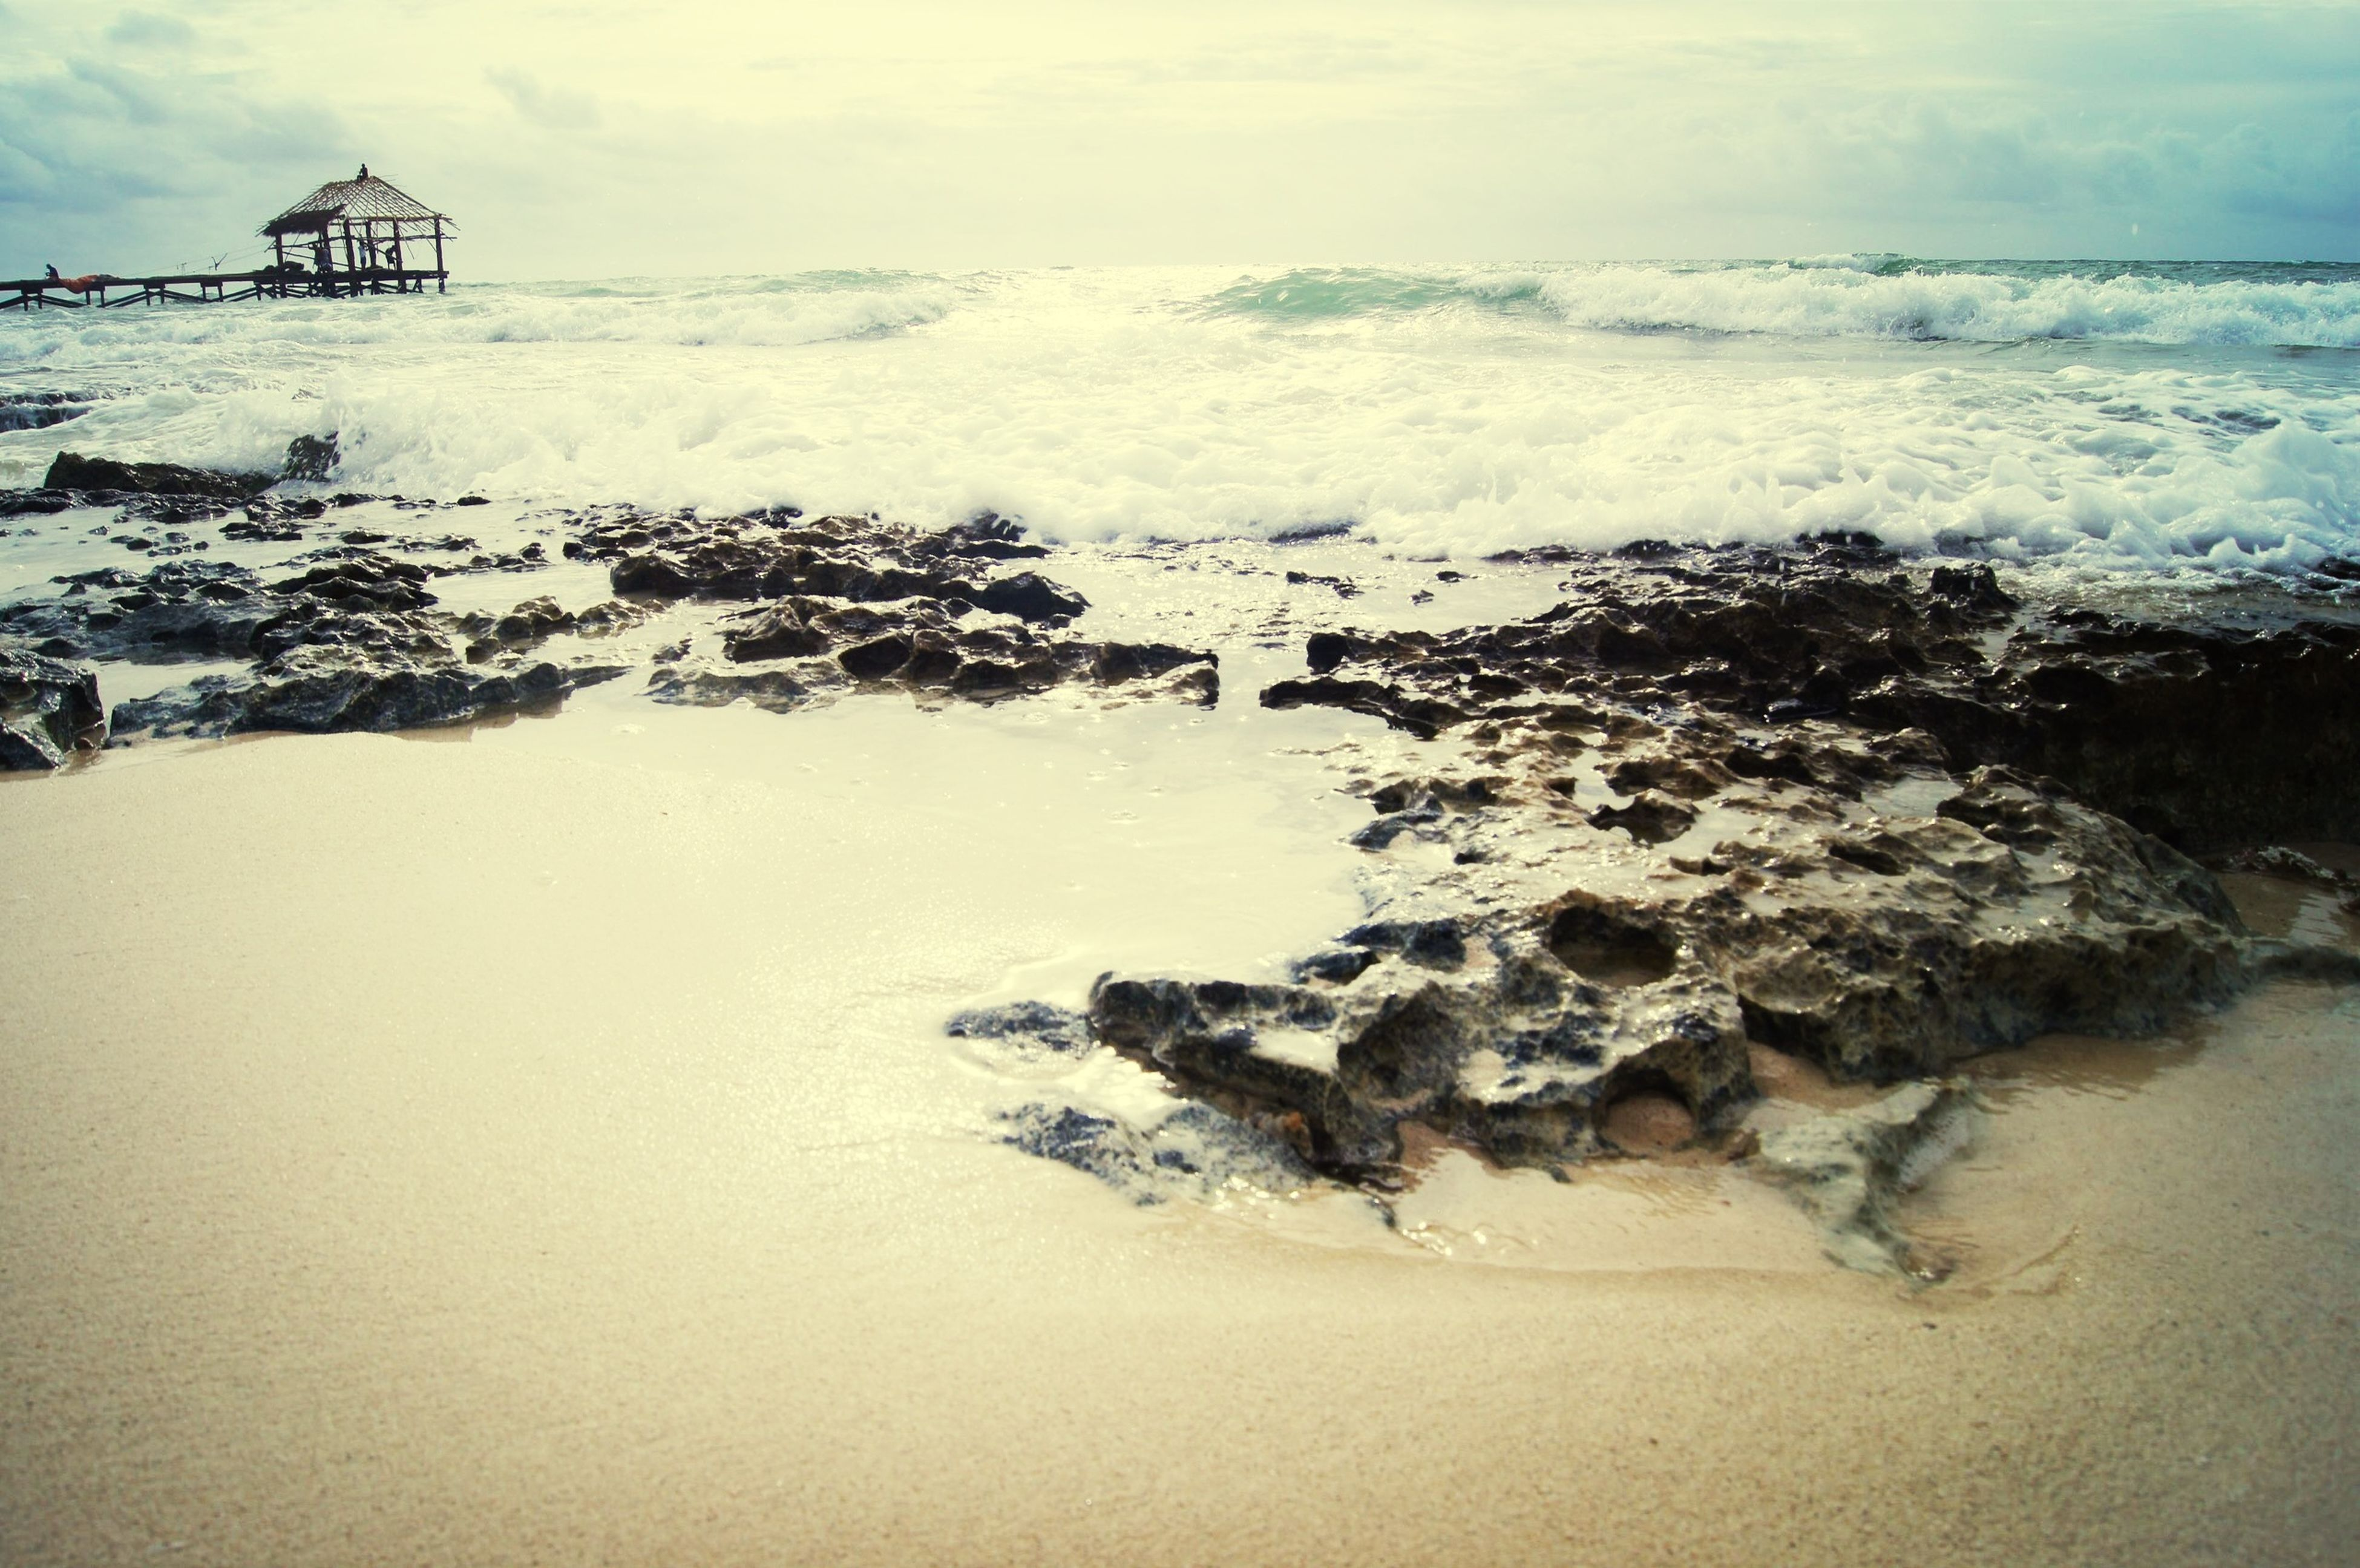 water, sea, horizon over water, scenics, wave, beauty in nature, beach, surf, sky, nature, tranquil scene, rock - object, shore, tranquility, motion, idyllic, splashing, clear sky, cliff, rock formation